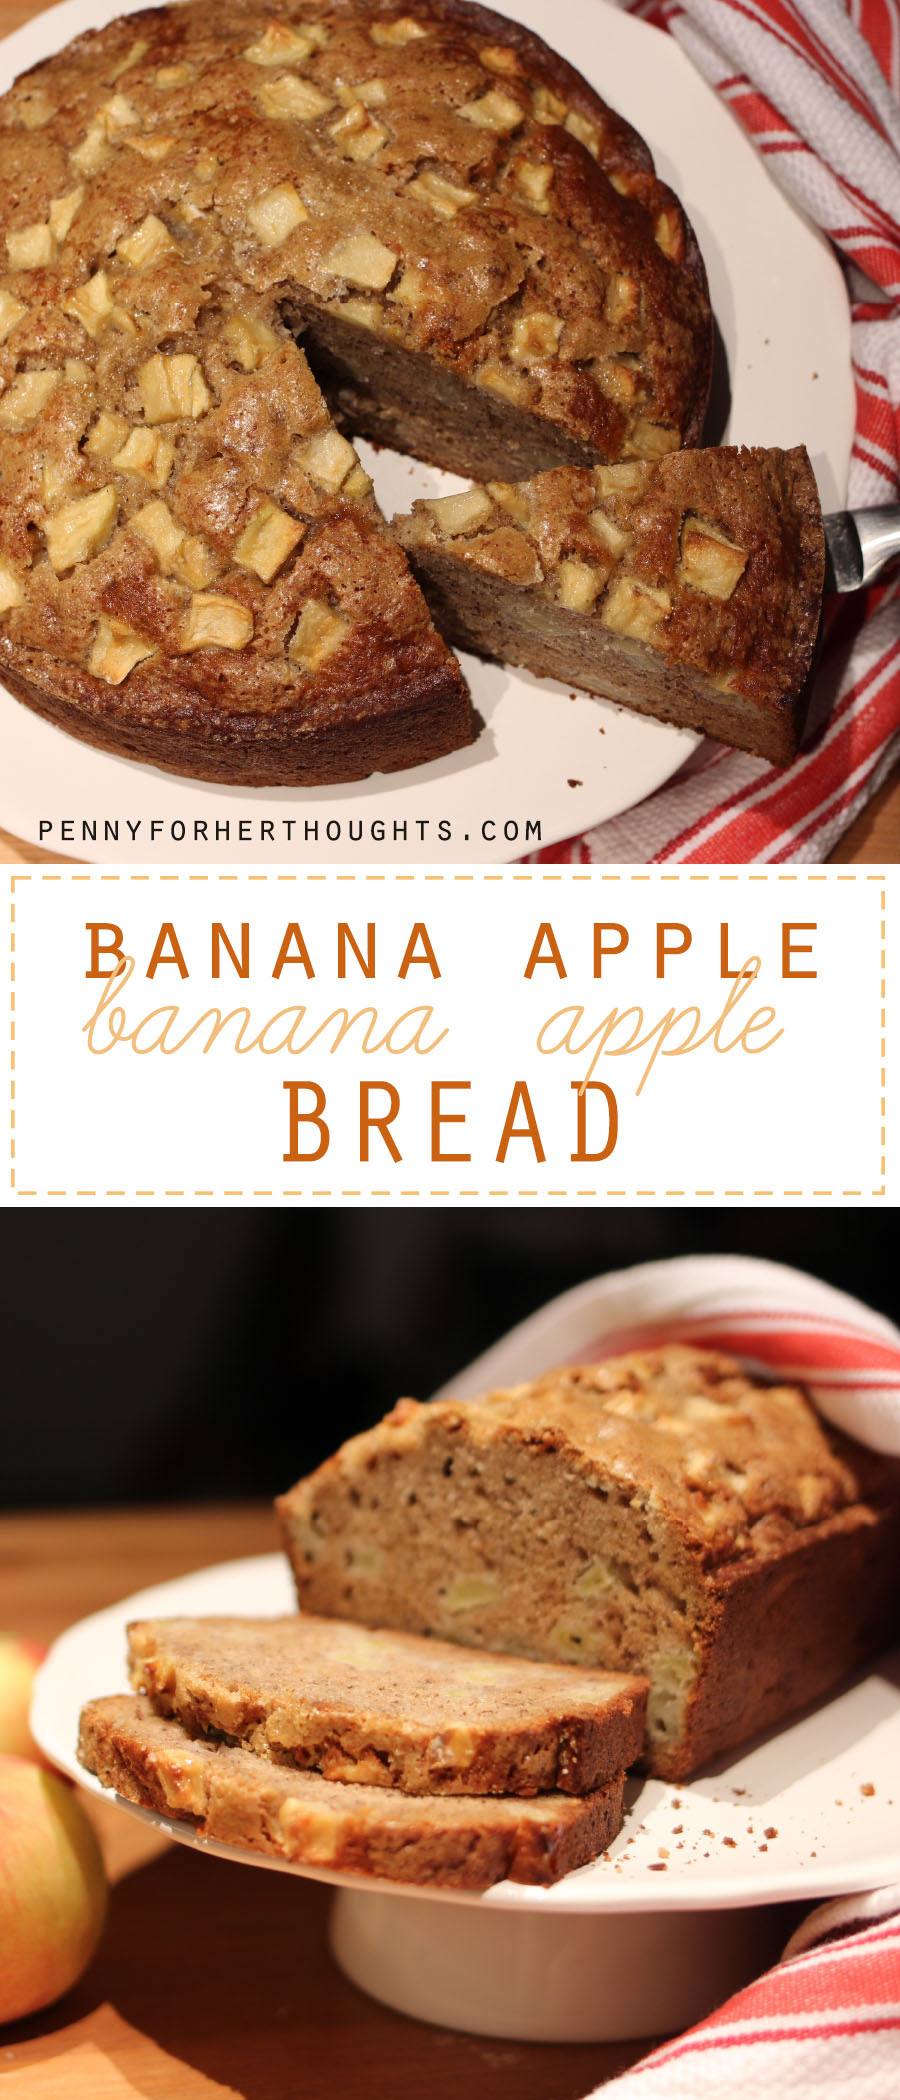 banana-apple-bread